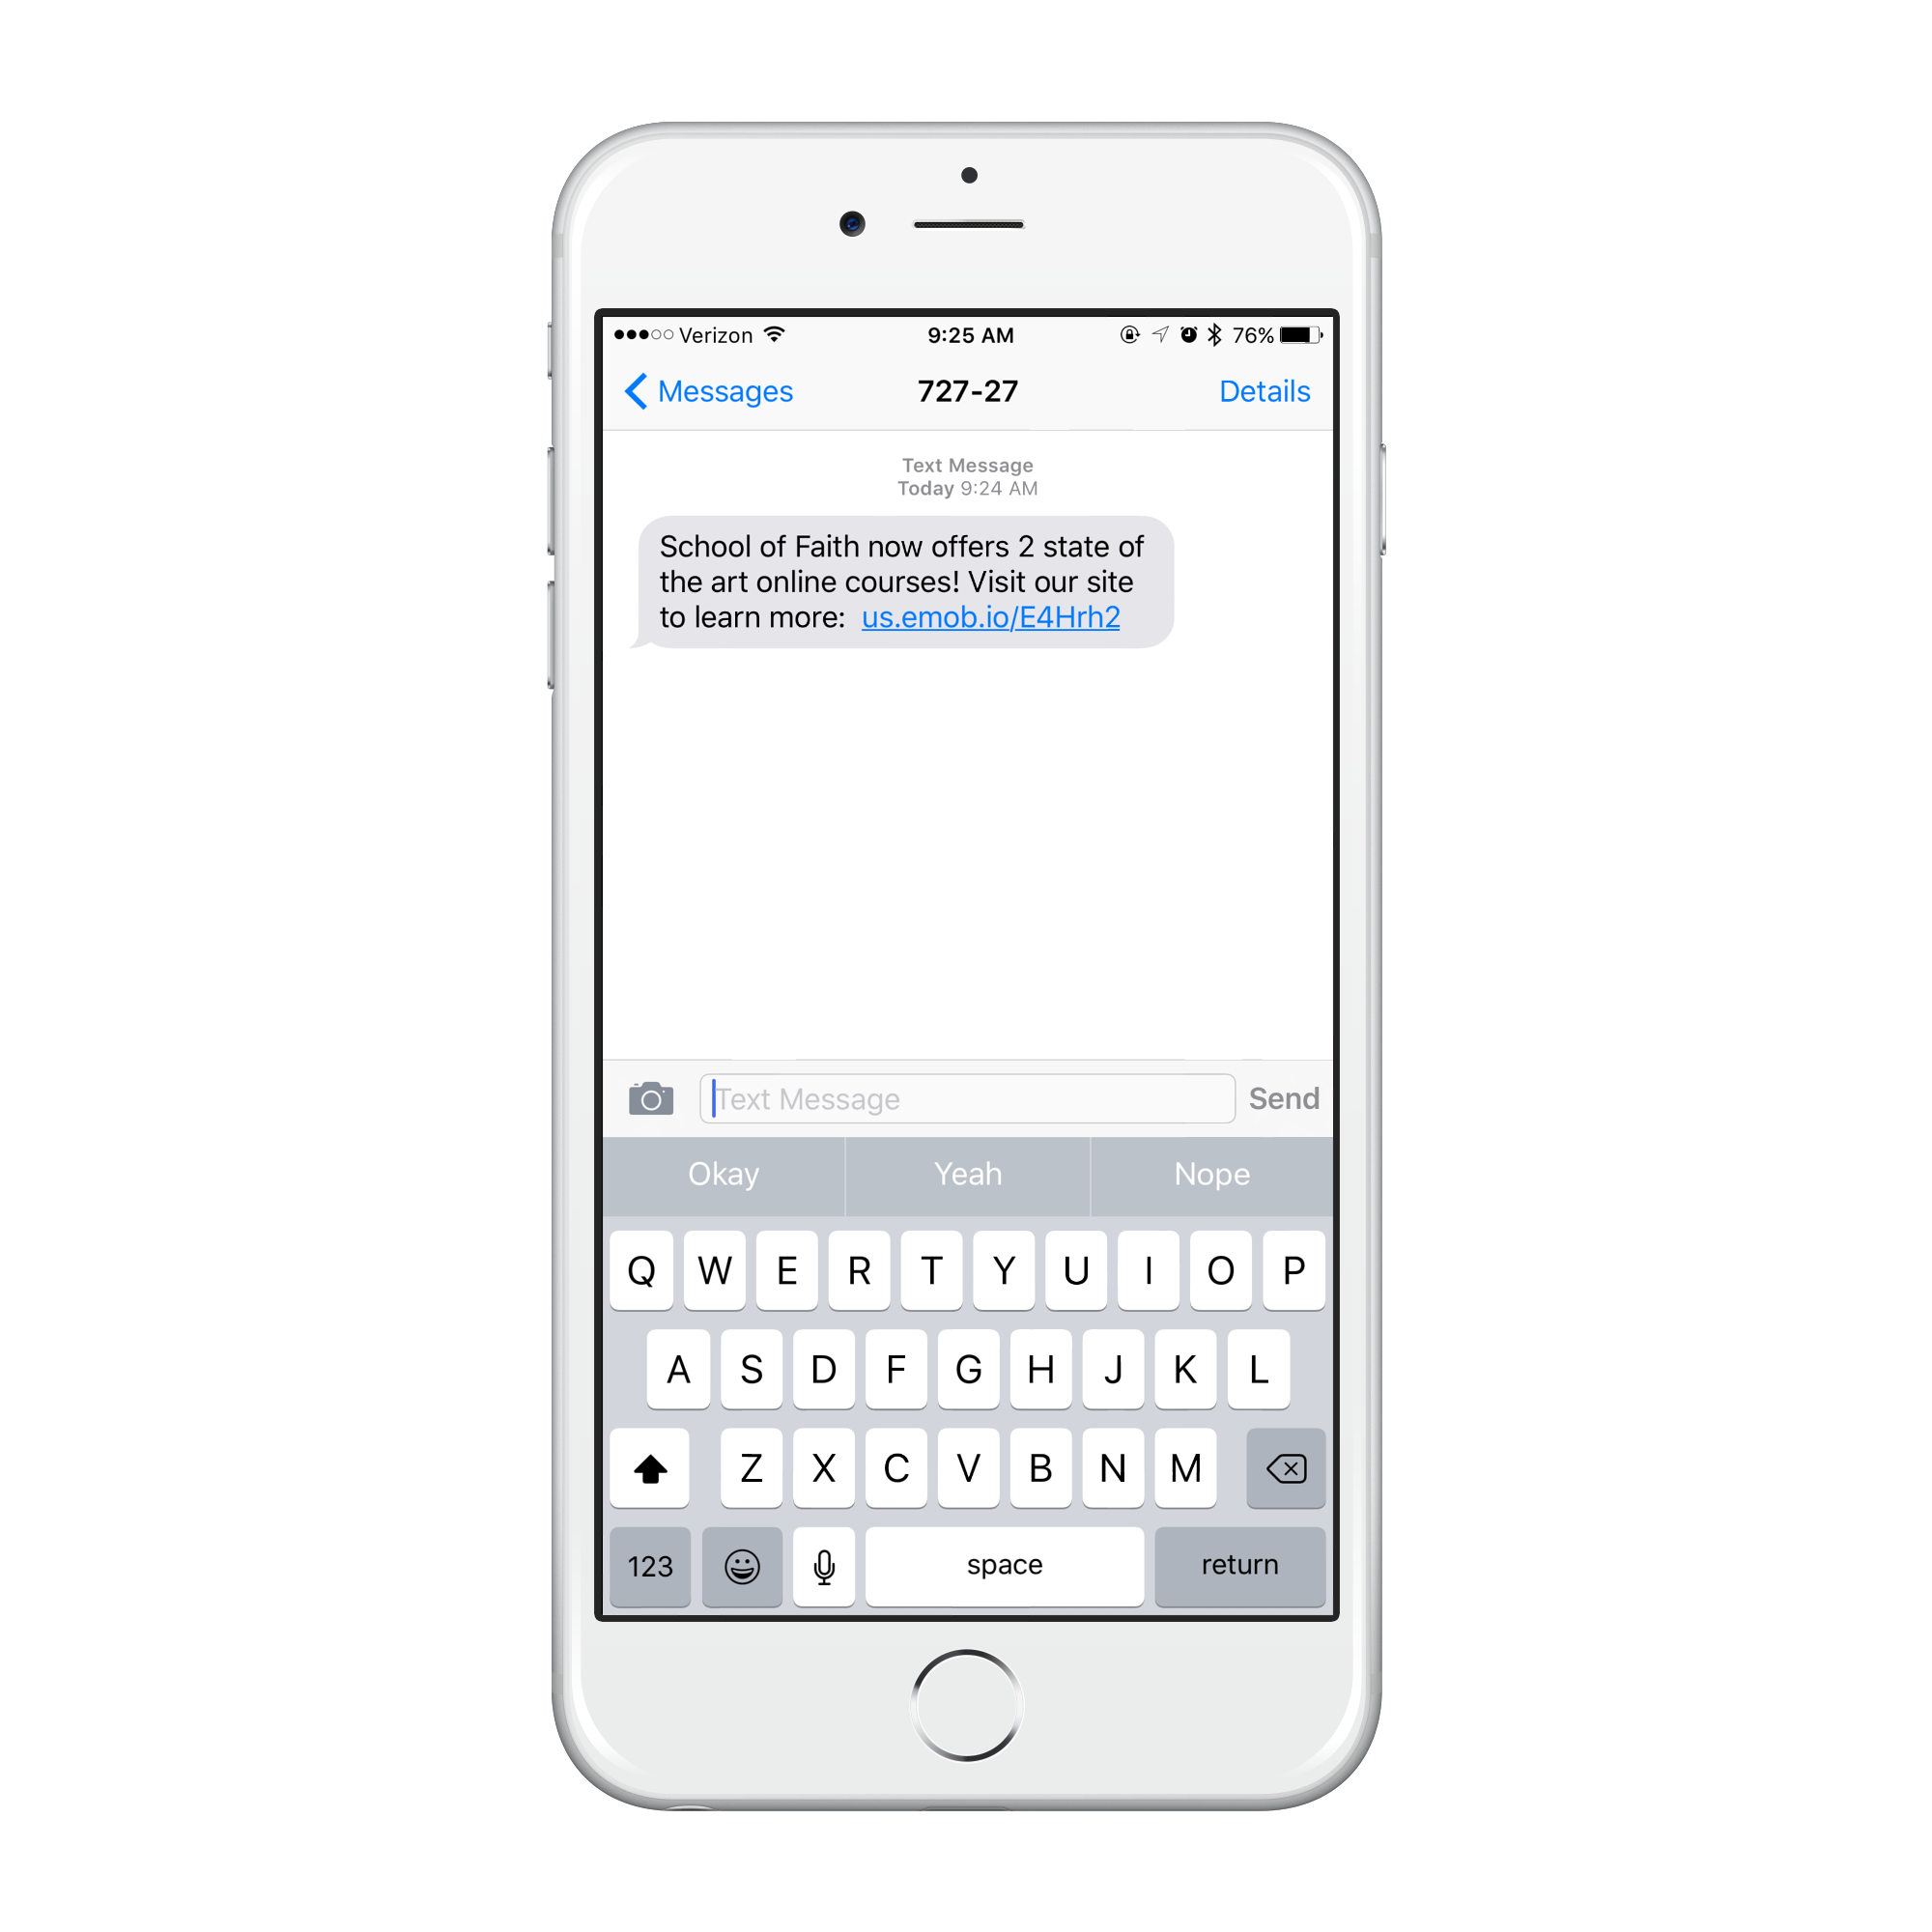 iPhone showing how a church could use Text Message Marketing to communicate with their members using a text message.